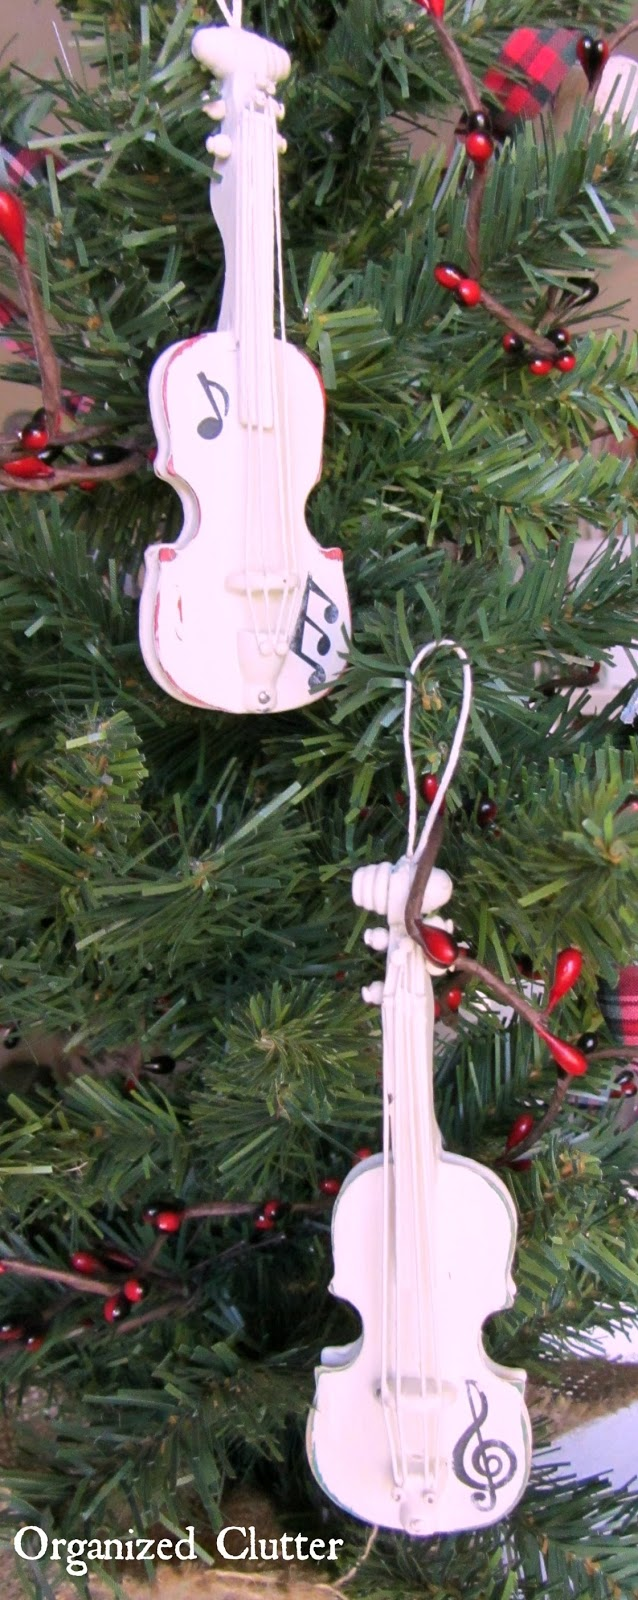 Upcycled Violin Ornaments with Paint & Mod Podge Transfer www.organizedclutterqueen.blogspot.com